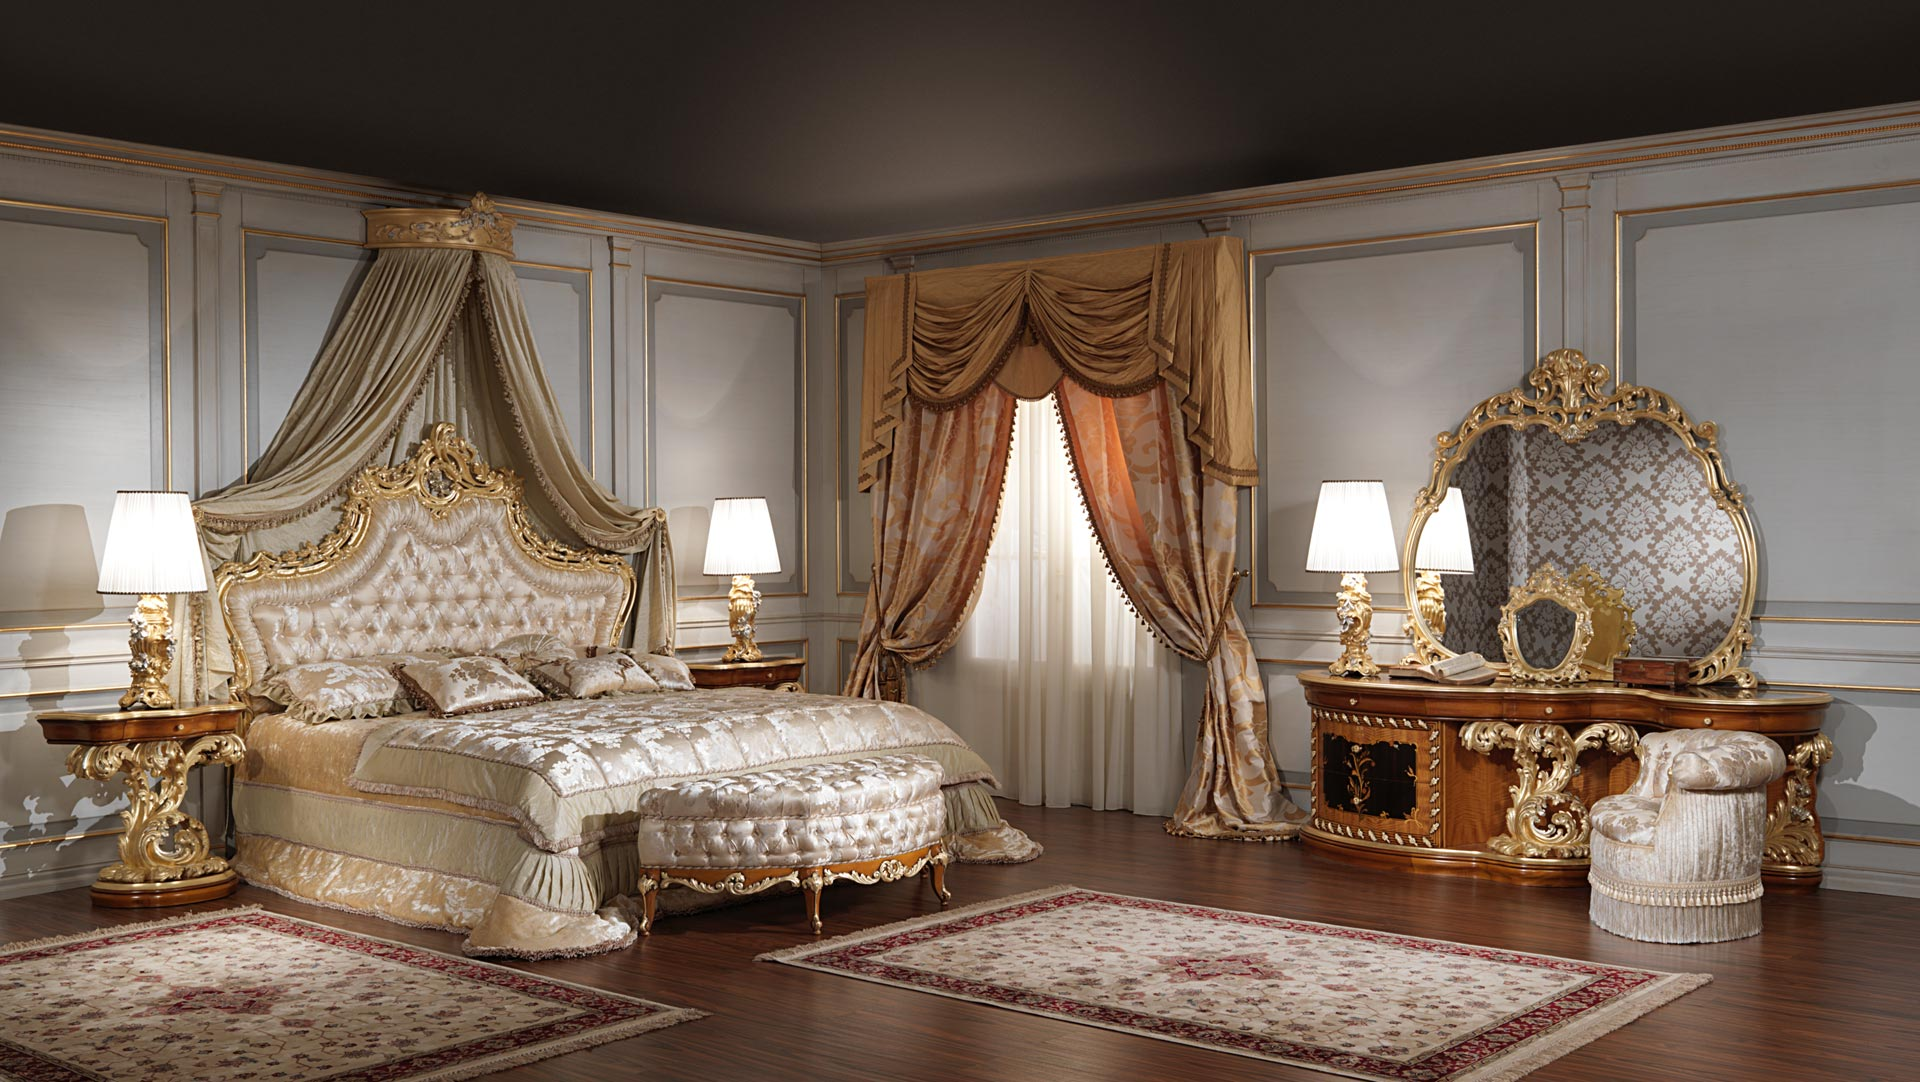 Luxury classic bedroom roman baroque style vimercati meda - Camera da letto glicine ...